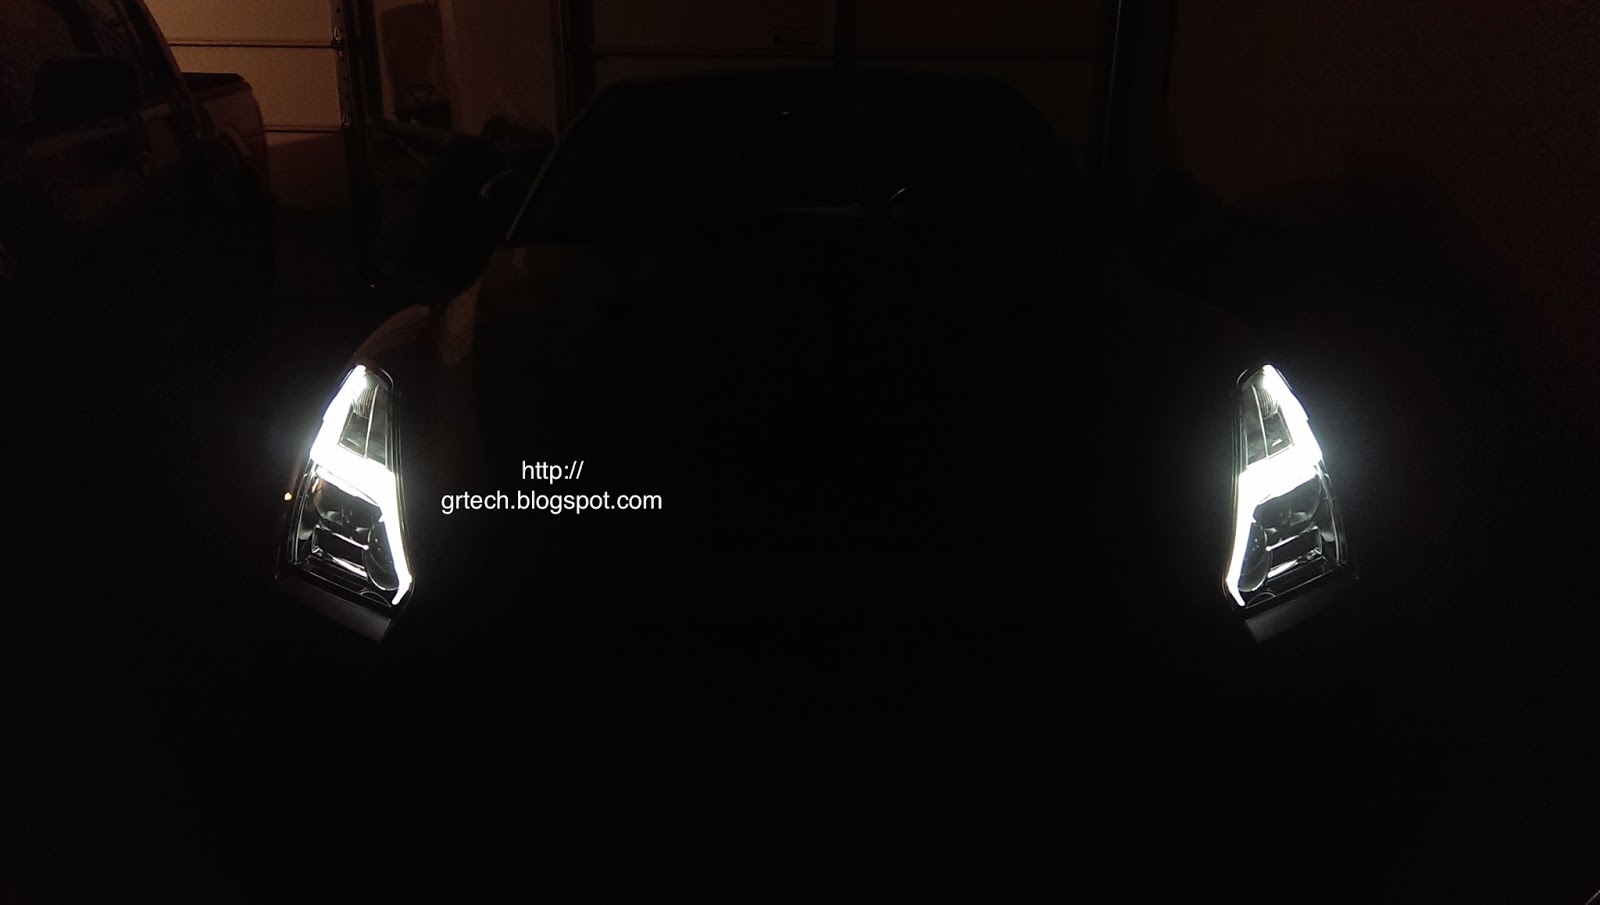 Nissan GT-R (R35) Technical DIY Blog: Headlights Conversion to 2015 LED  Headlights with Manual ON/OFF for Lightning Bolt